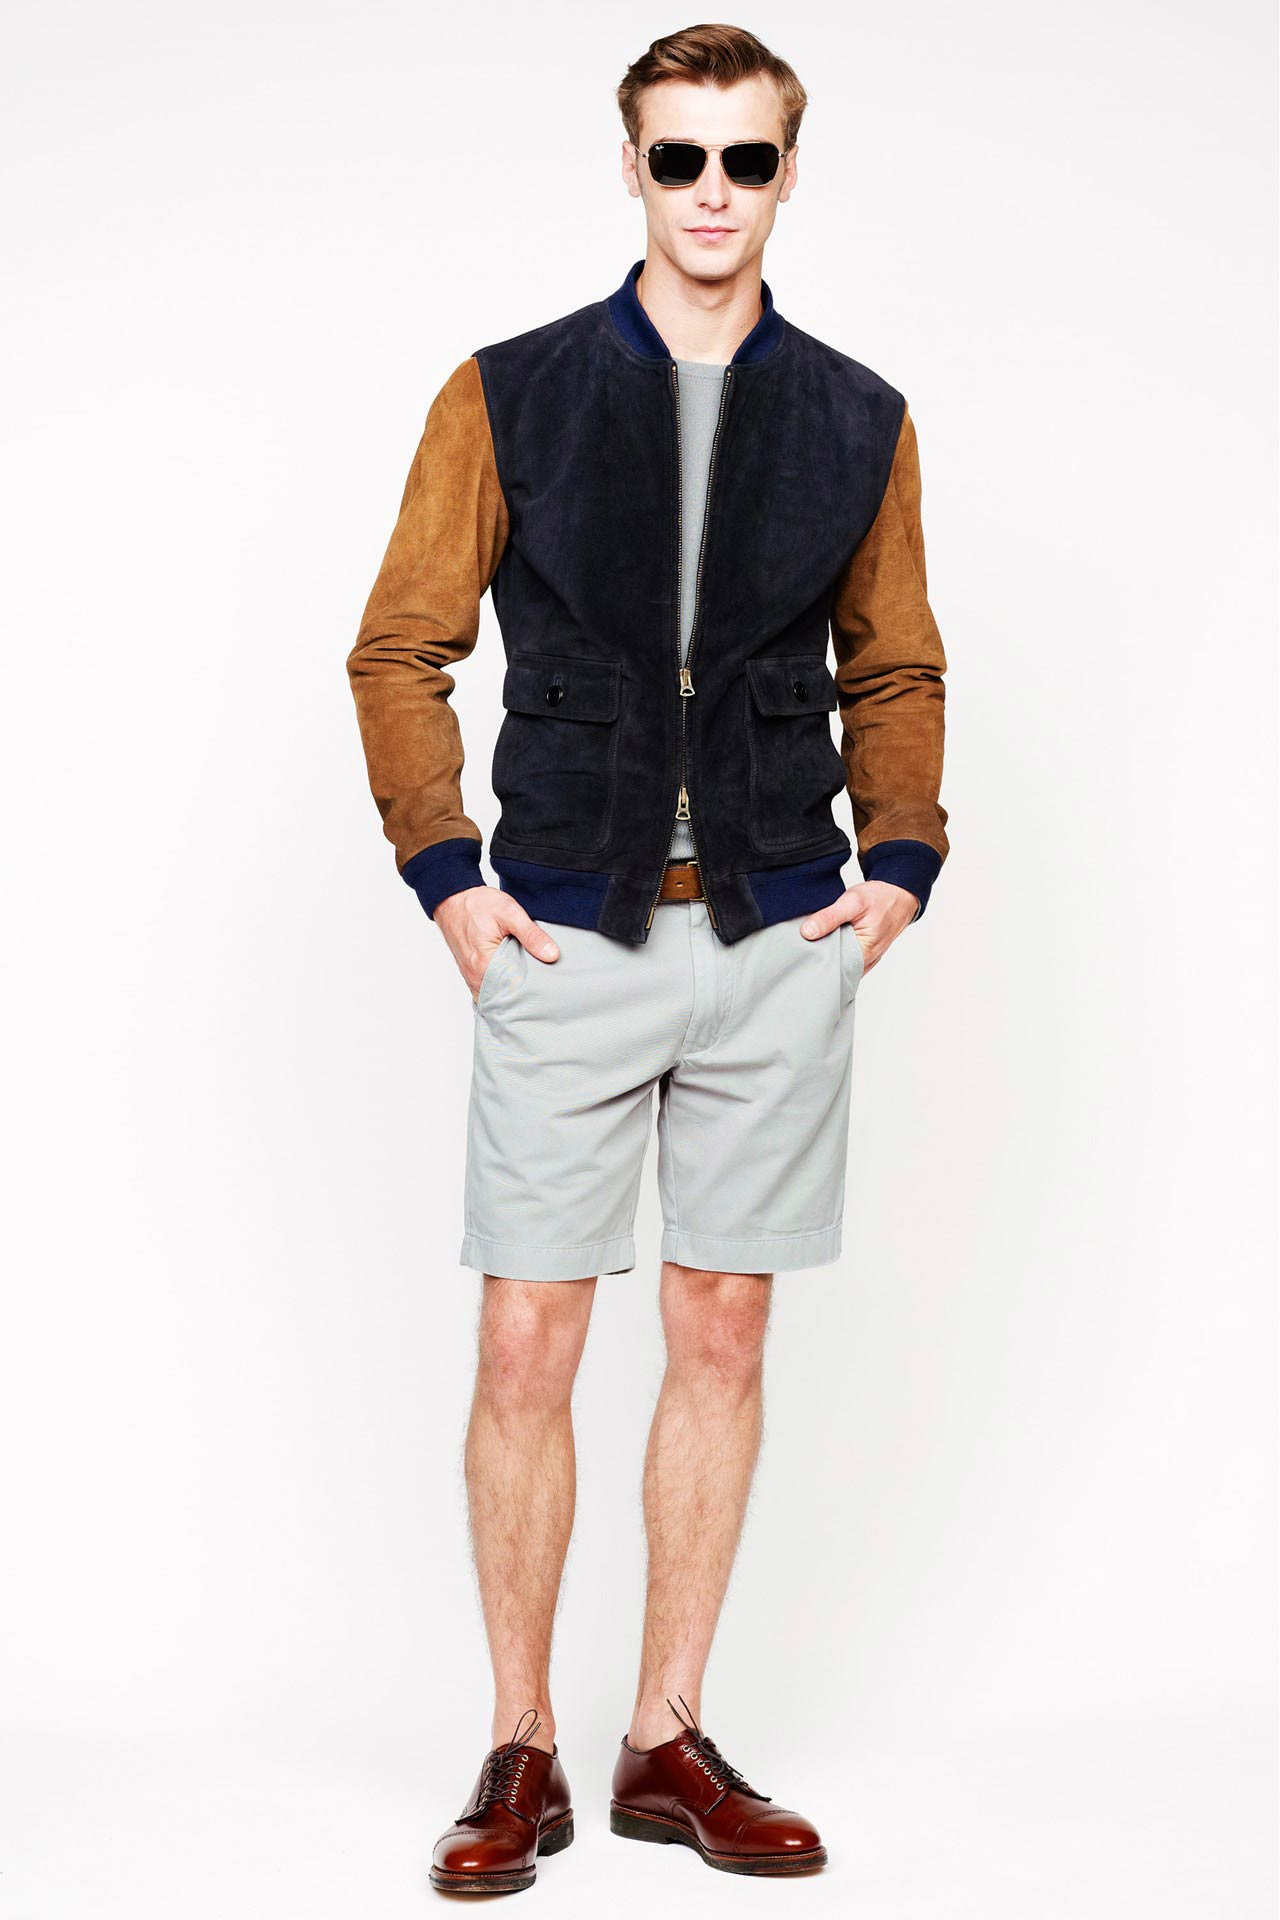 JCrew 2014 Sample Sale 01